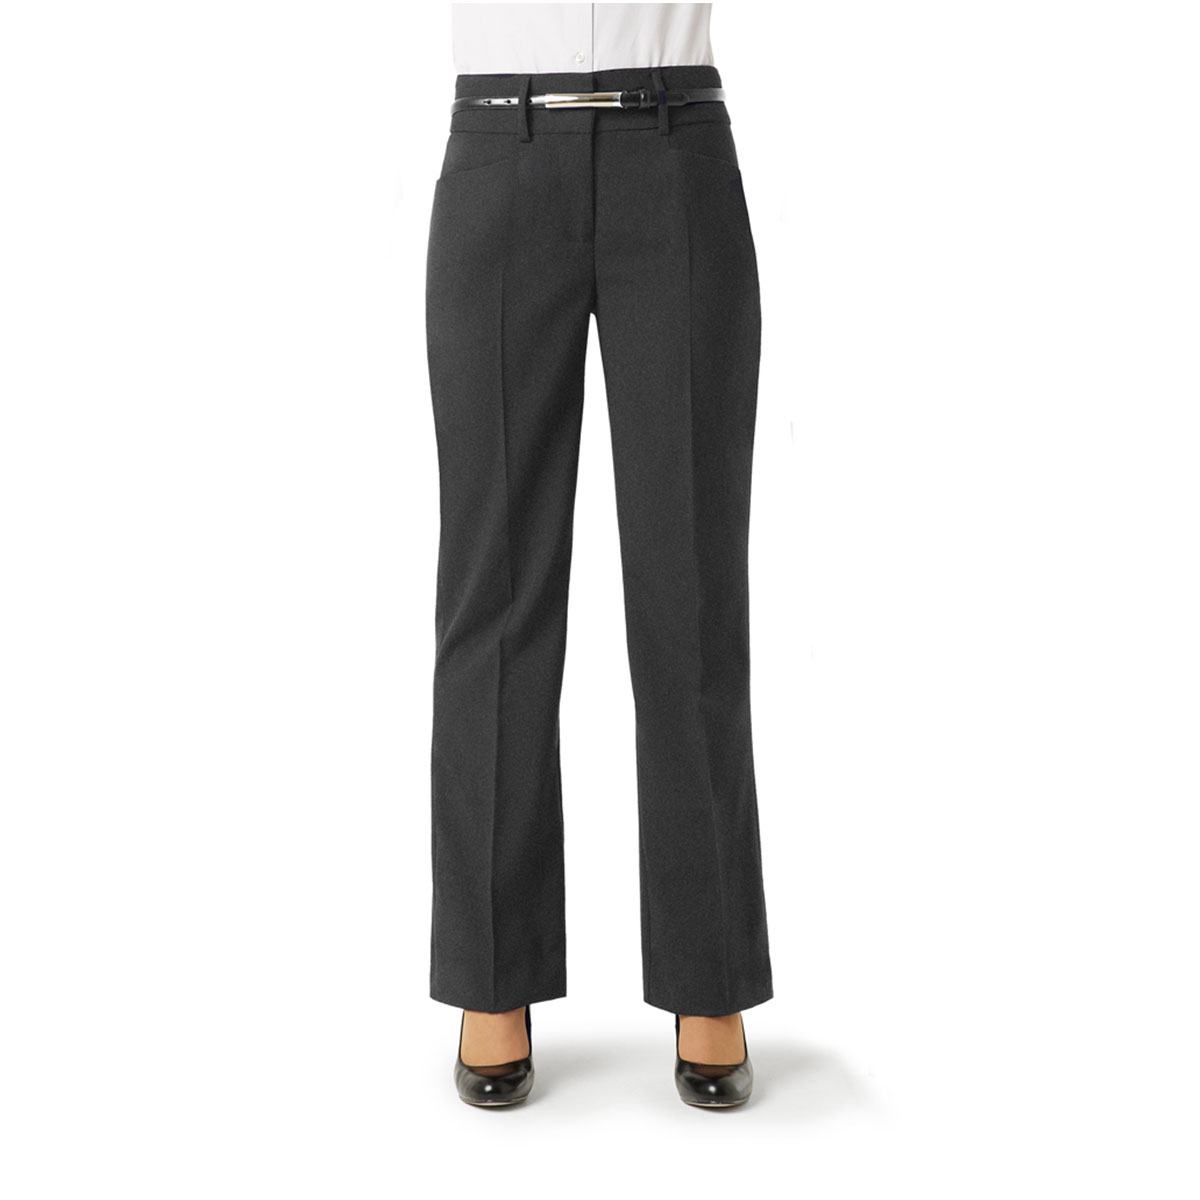 Ladies Classic Bootleg Pant-Charcoal